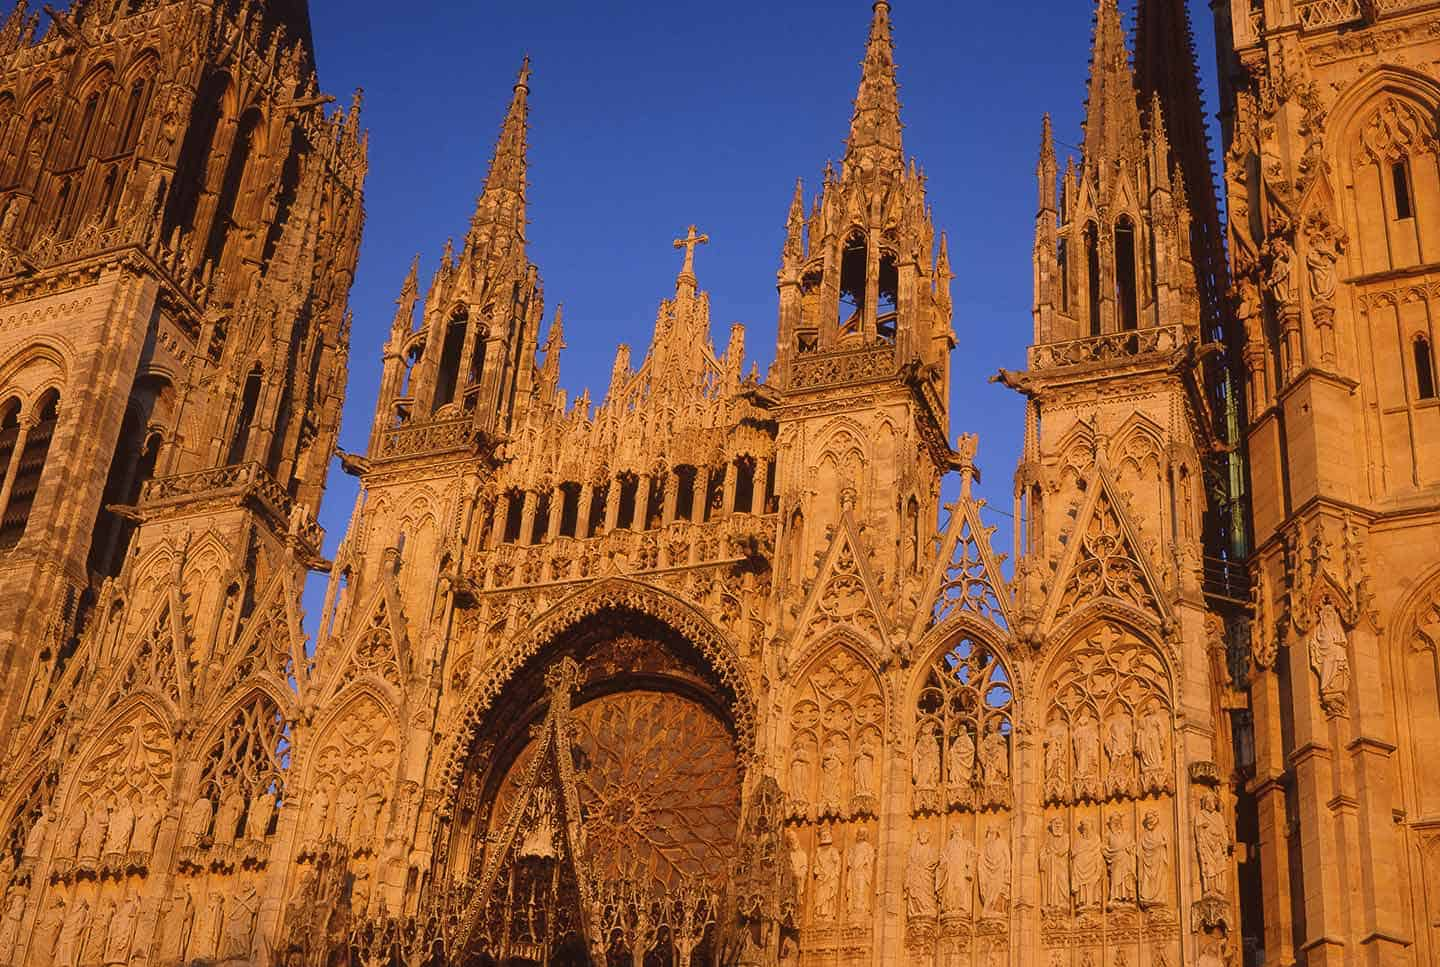 Image of Rouen Cathedral, France,  at sunset